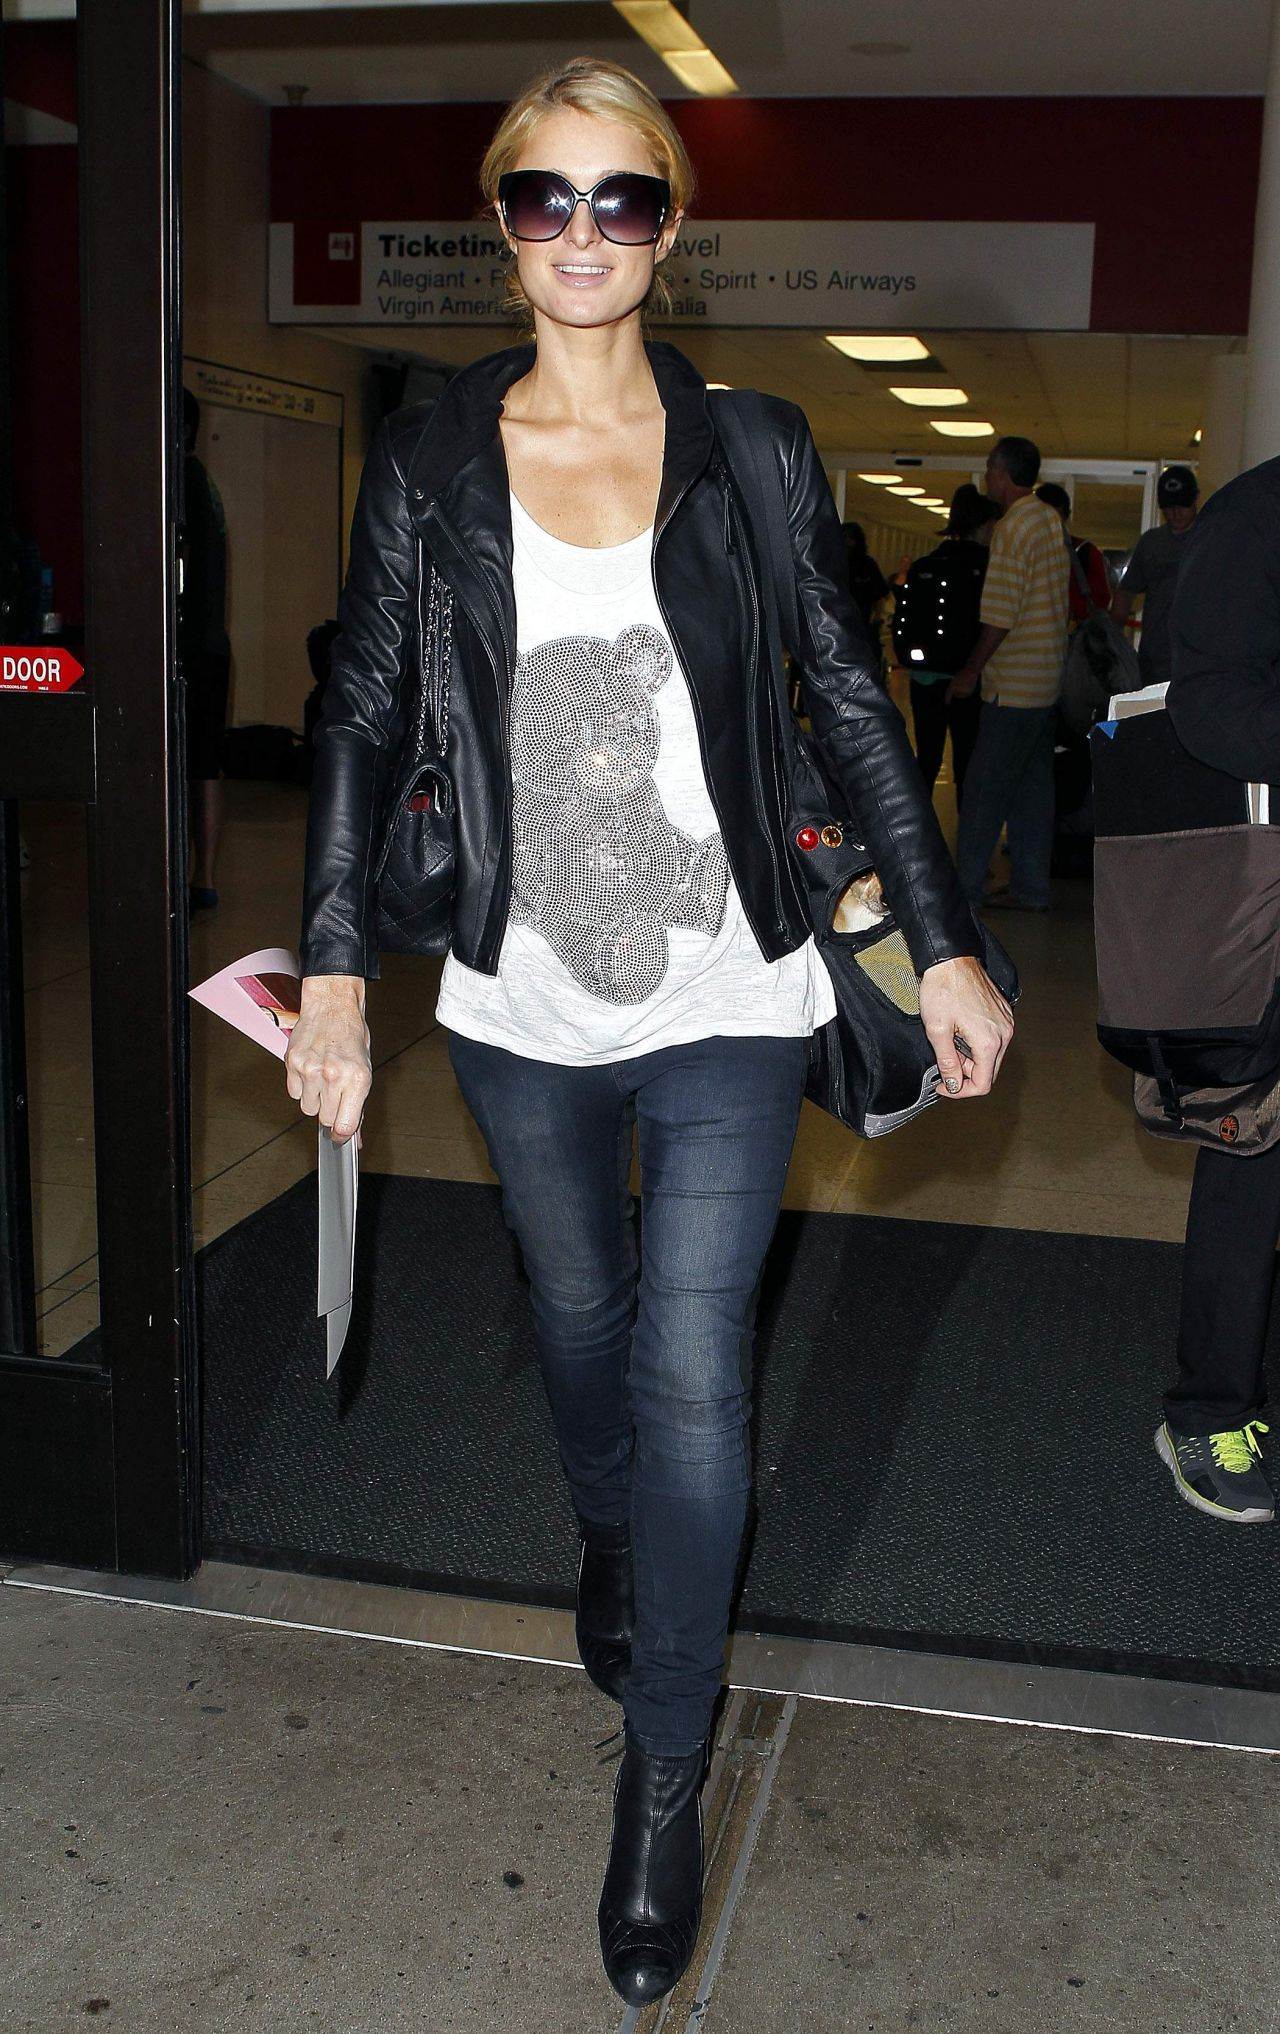 Paris Hilton in Tight Jeans at LAX Airport in Los Angeles - May 2014